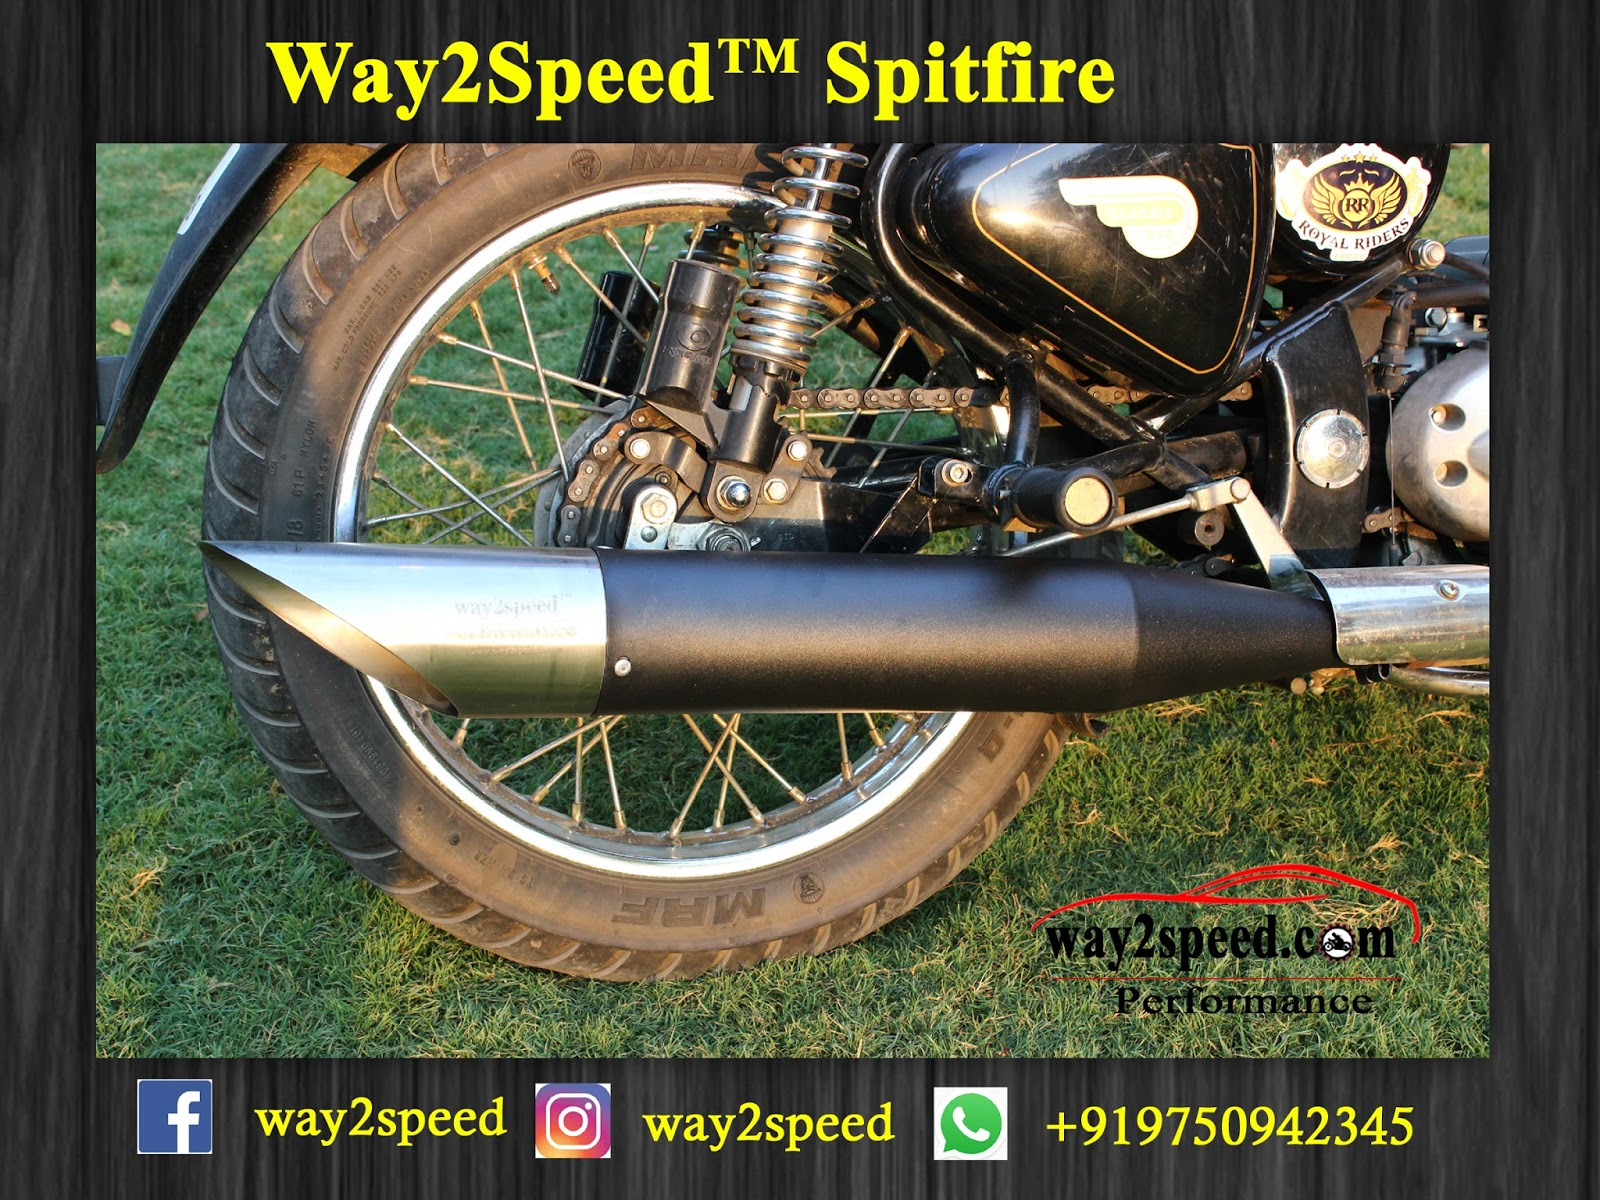 Way2Speed Spitfire Silencer For Royal Enfield  ( Royal Enfield exhaust | Best silencer for royal enfield | royal enfield classic 350 silencer sound | silencer for classic 350 | royal enfield glass wool silencer (ceramic wool) | silencer for bullet | Bullet silencer | Bullet silencer sound increase )